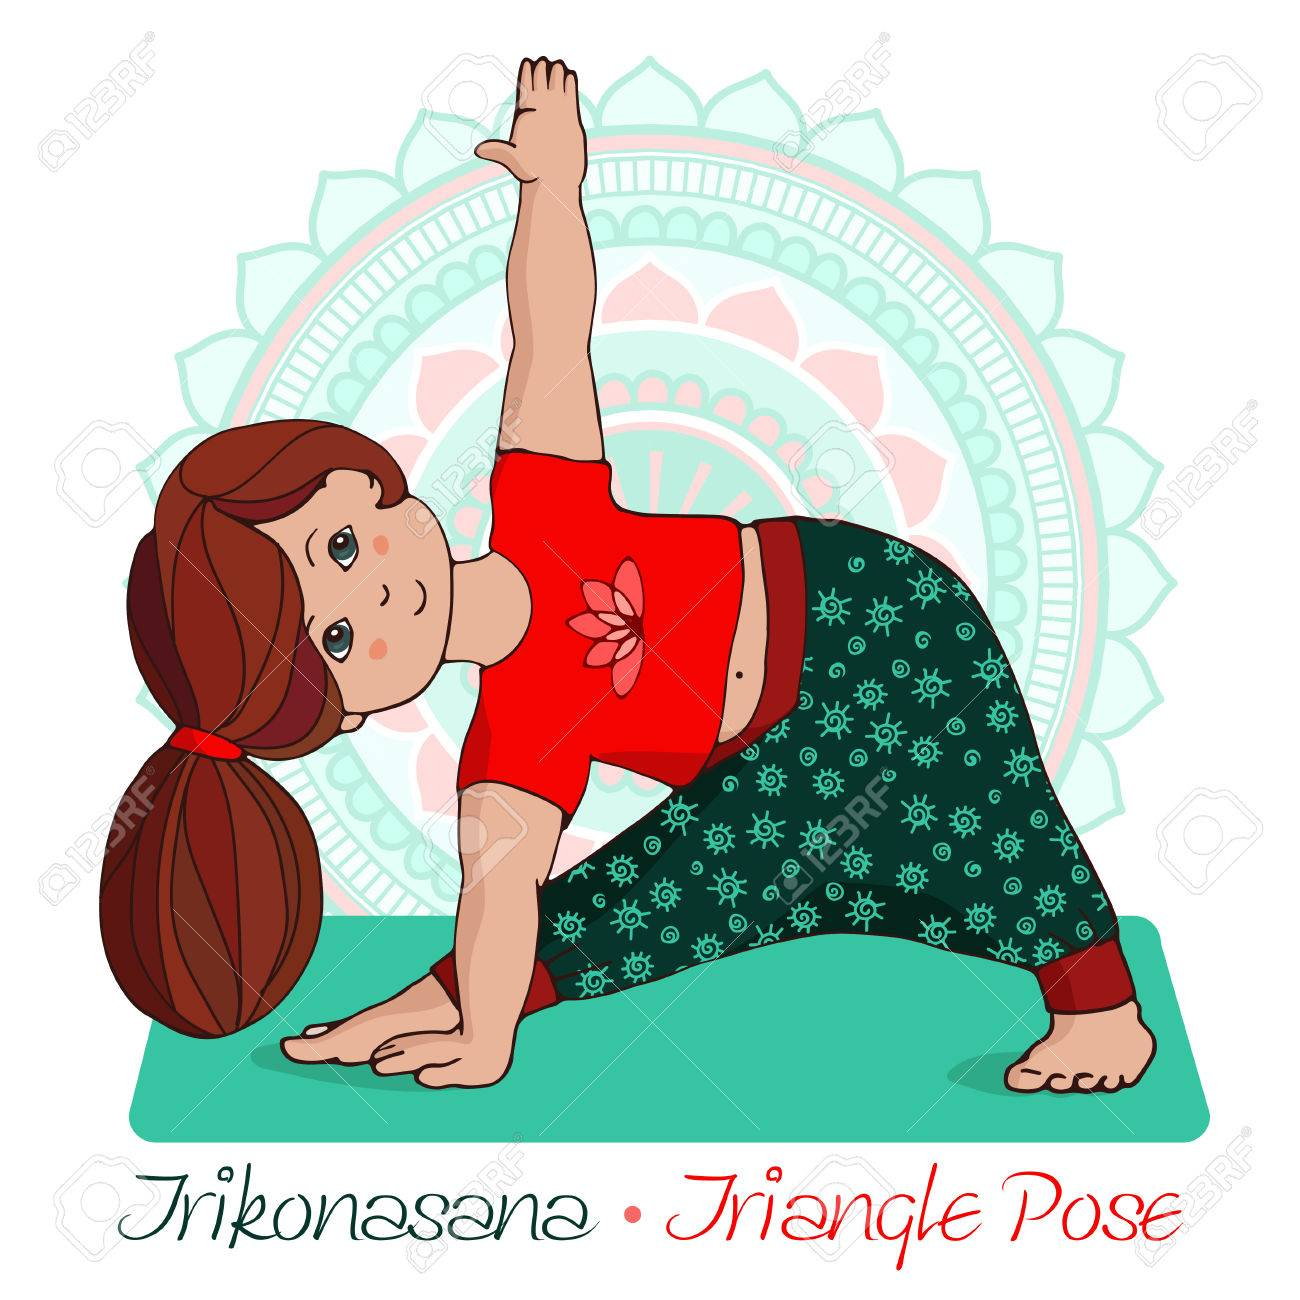 Cartoon girl in triangle pose with mandala background hand draw cartoon girl in triangle pose with mandala background hand draw illustration for yoga kids sciox Gallery